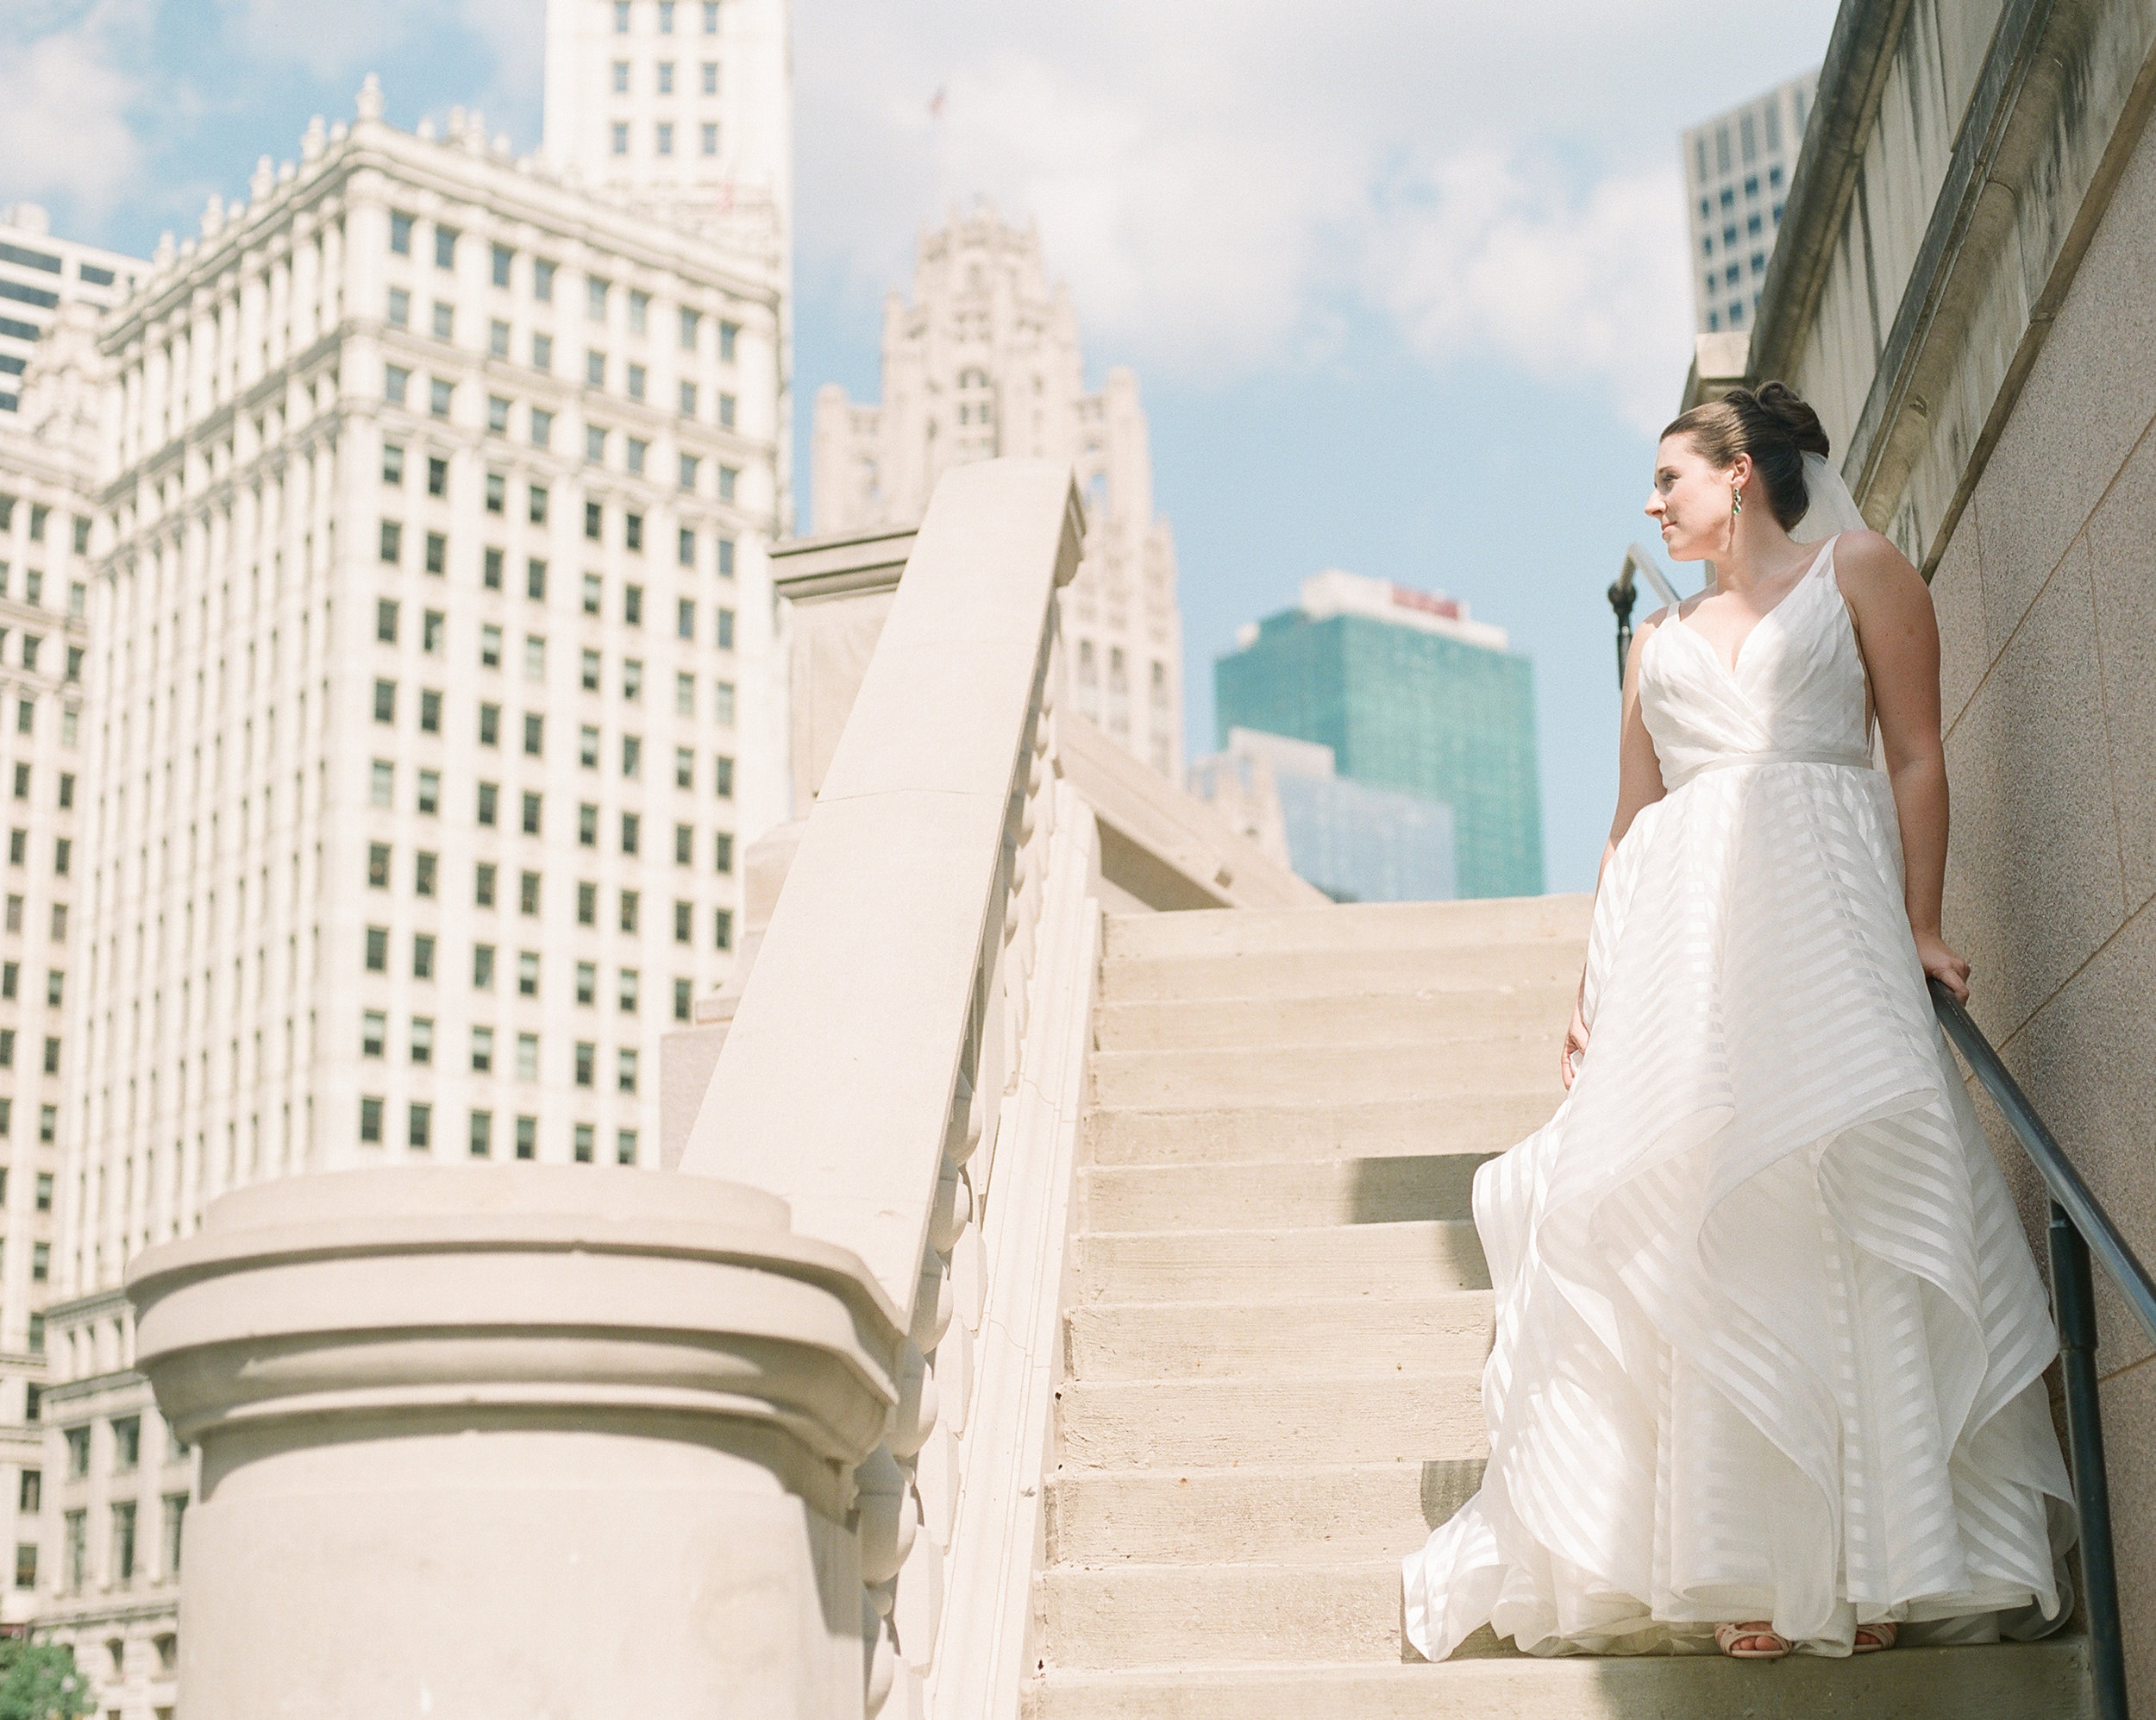 Bonphotage Chicago Fine Art Wedding Photography - London House Chicago